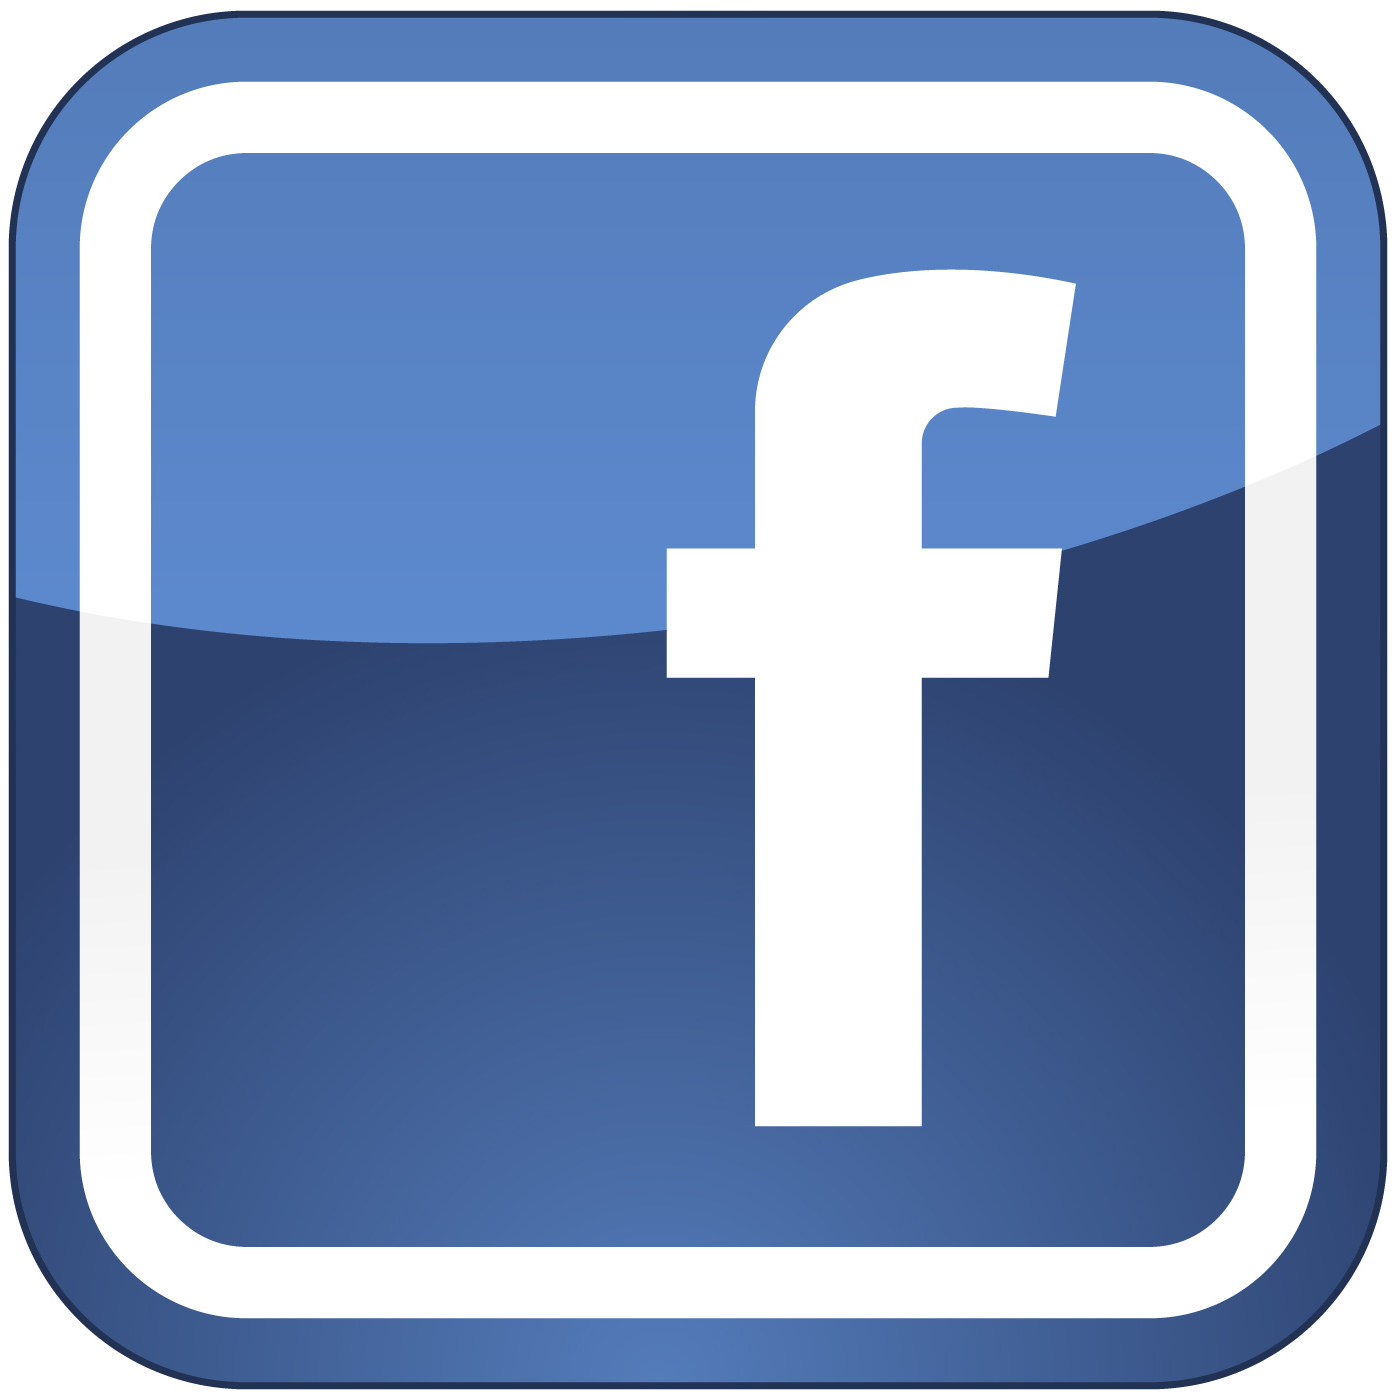 4156 Facebook free clipart.